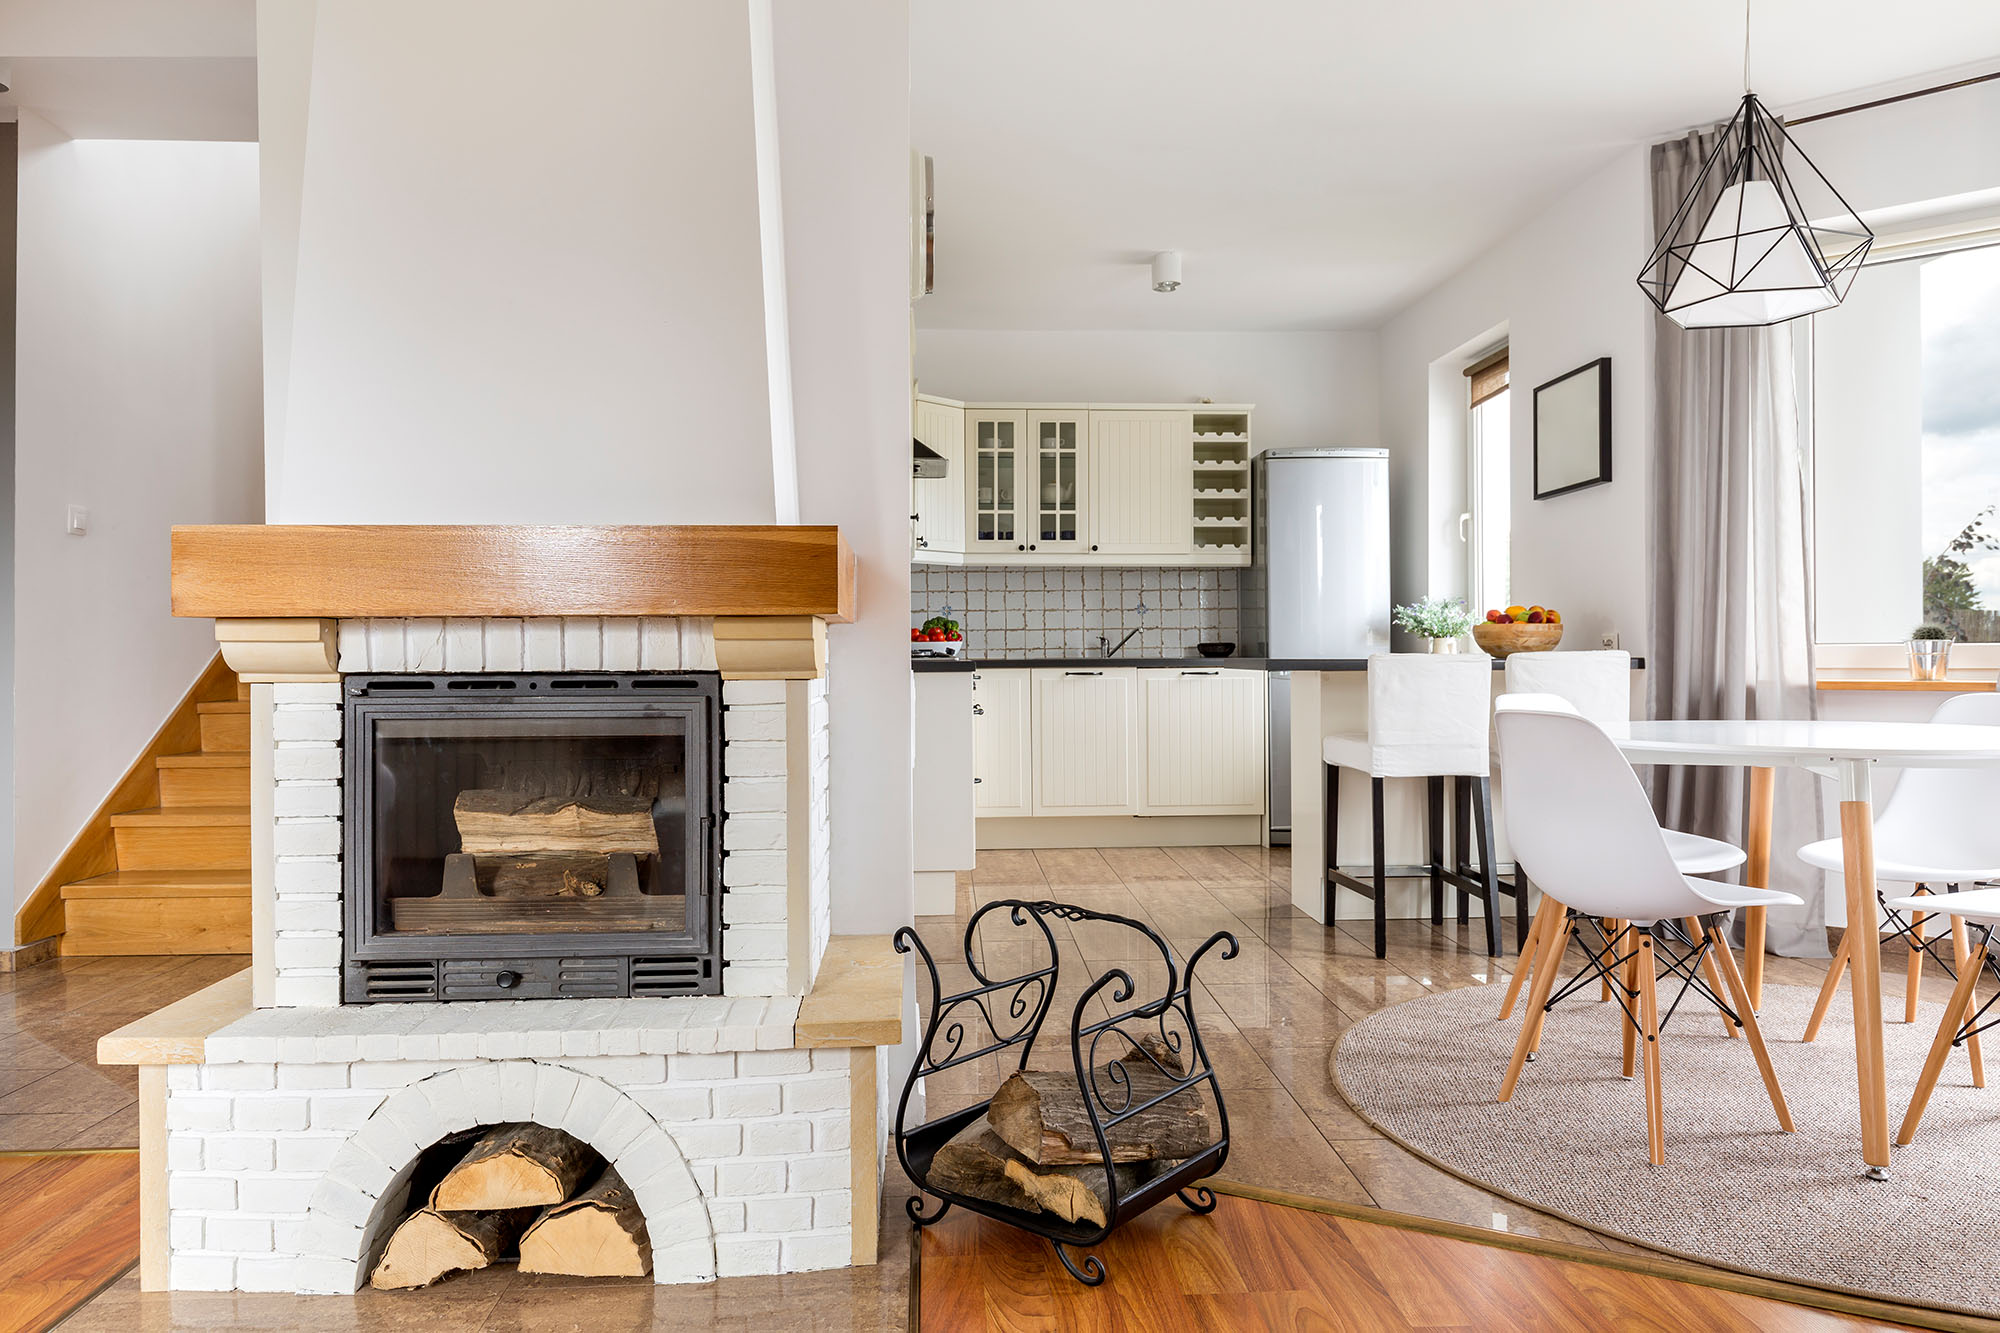 Shot of a fireplace in a stylish modern house